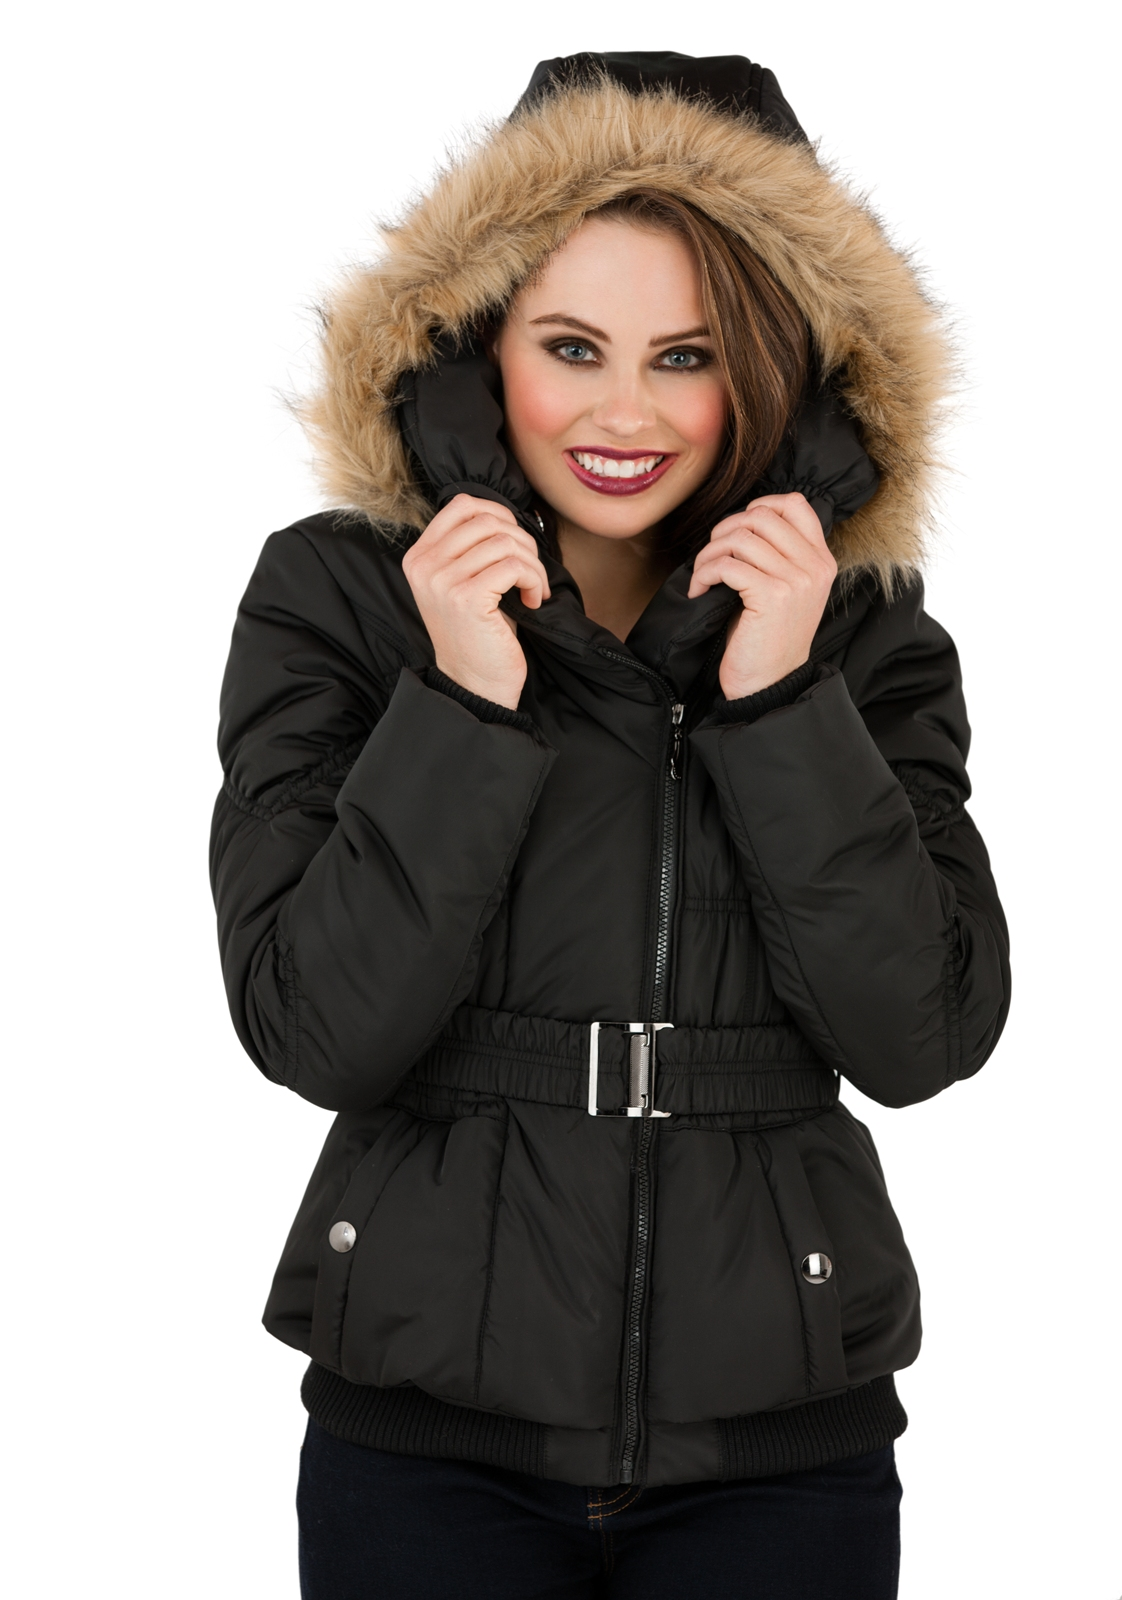 Find a great selection of women's fur coats & faux fur at seebot.ga Shop top brands like Trina Turk, Moose Knuckles & more. Free shipping & returns.